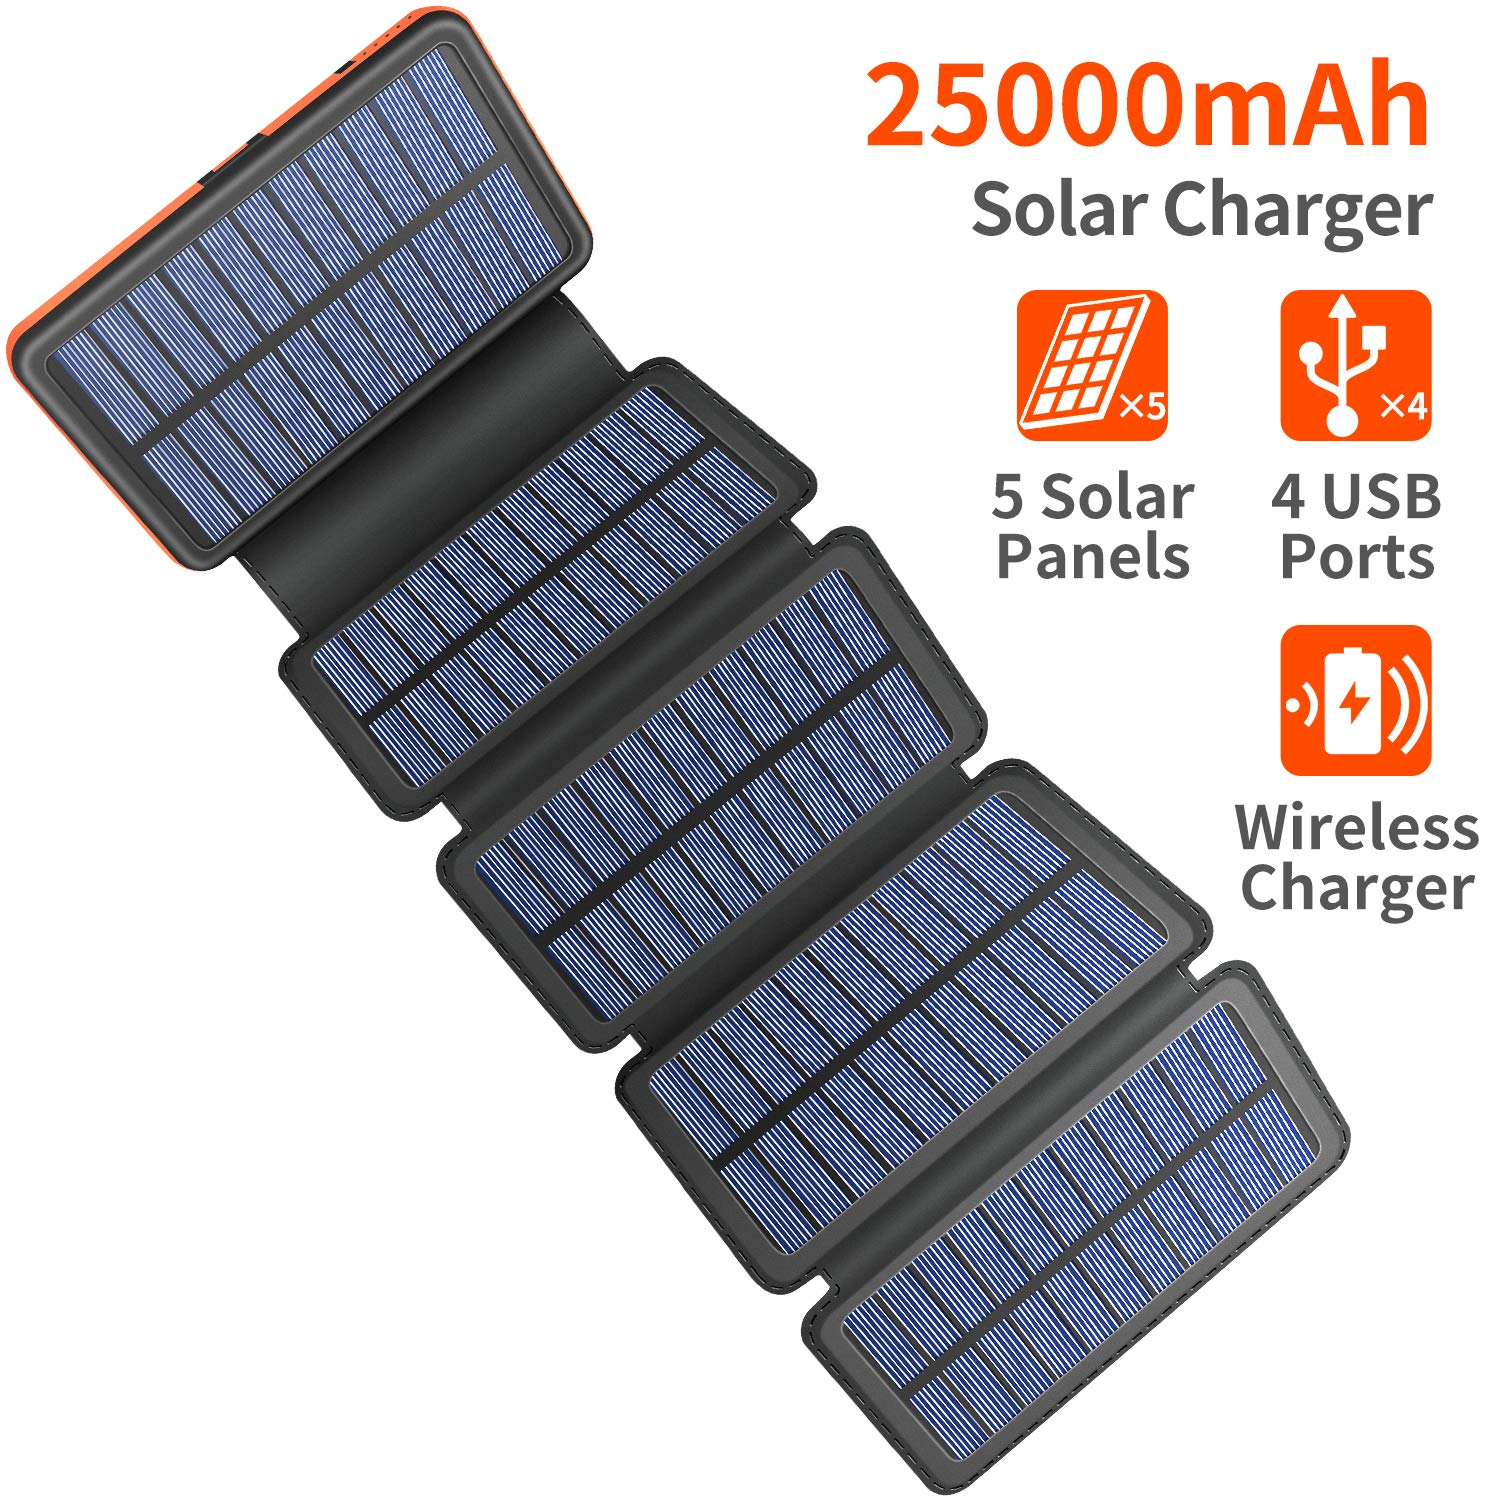 Solar Charger 25000mAh, 5 Solar Panel QI Wireless Outdoor Portable Power Bank - Waterproof Fast Charge External Battery Pack with Dual 2.1A Output USB for Cell Phones Tablet GoPro Camera by AddAcc